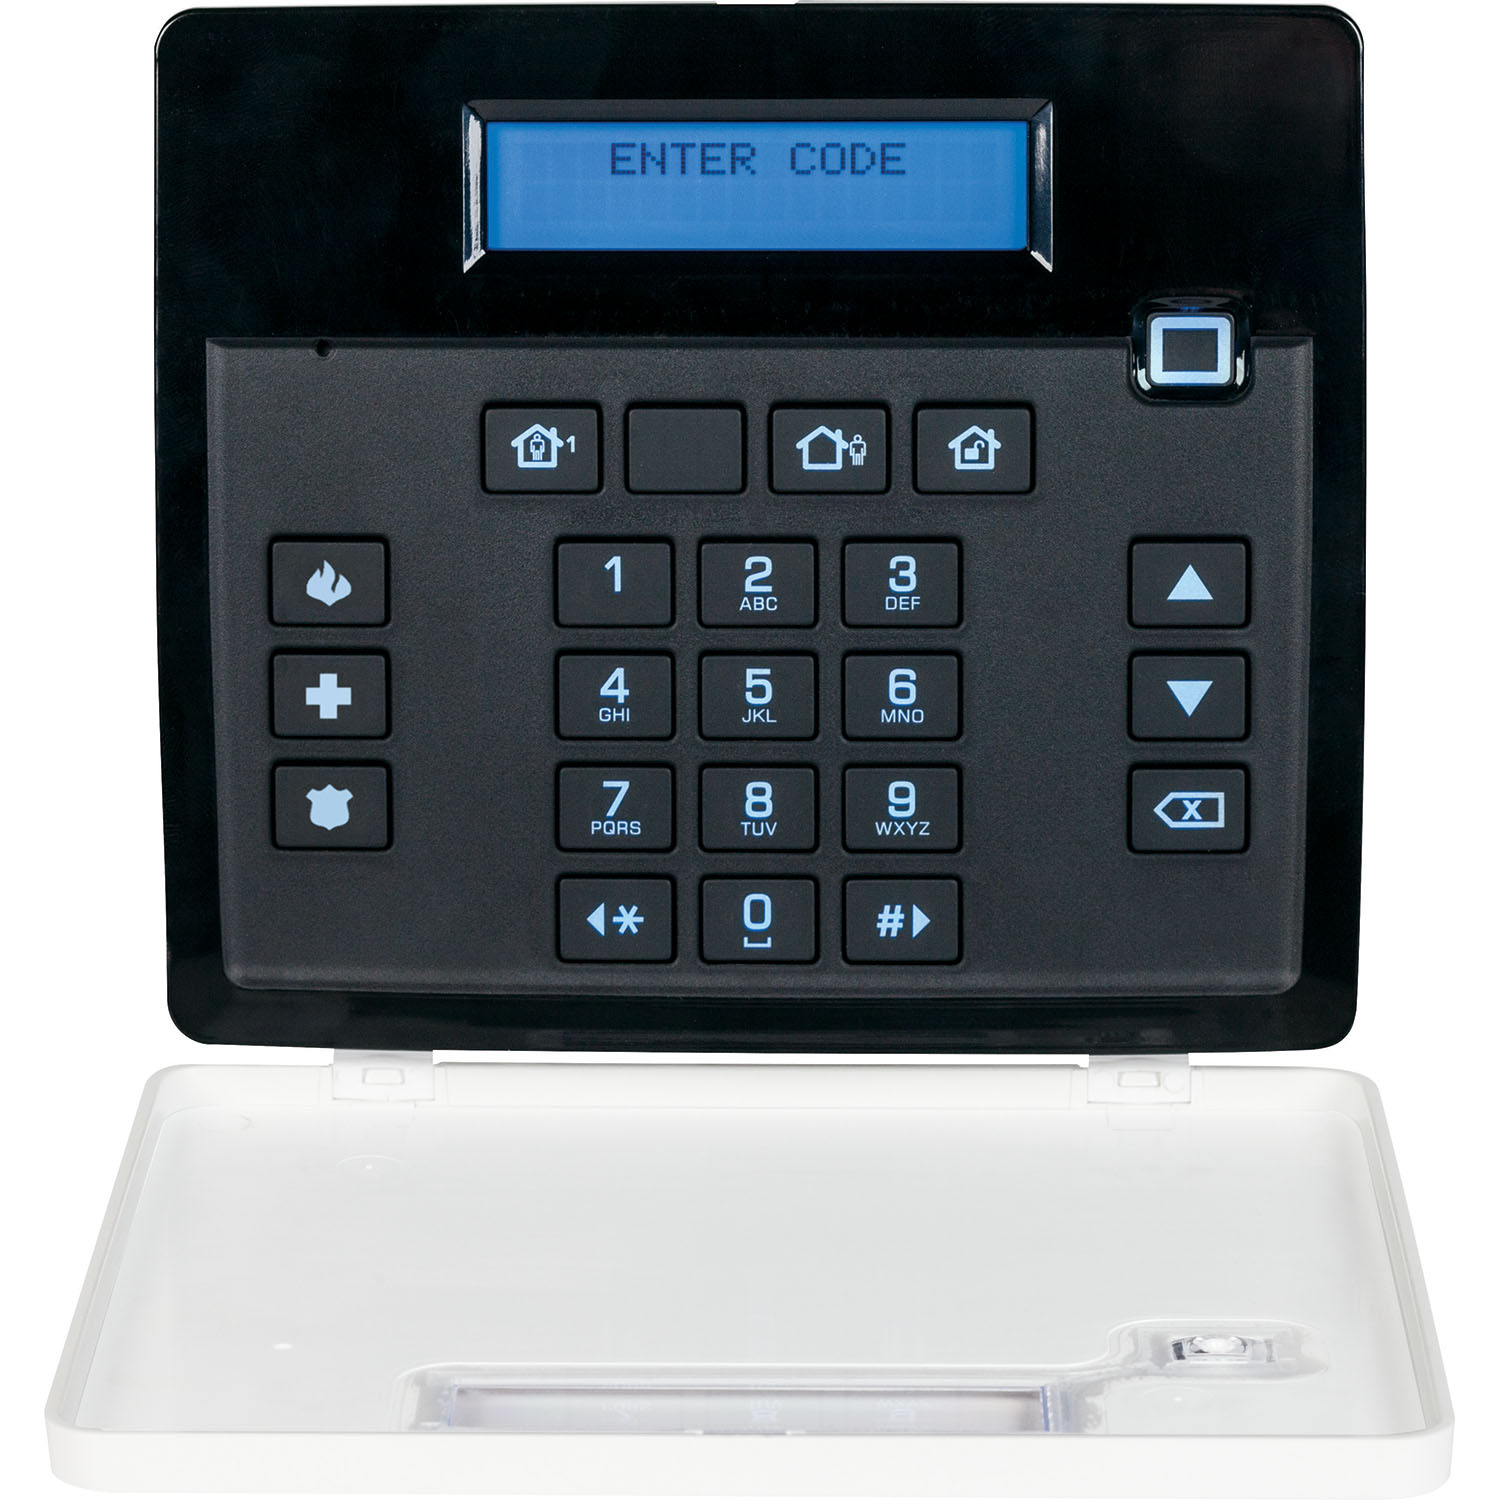 600 1070 e_keypad_300dpi download library interlogix global security products truportal wiring diagram at bayanpartner.co